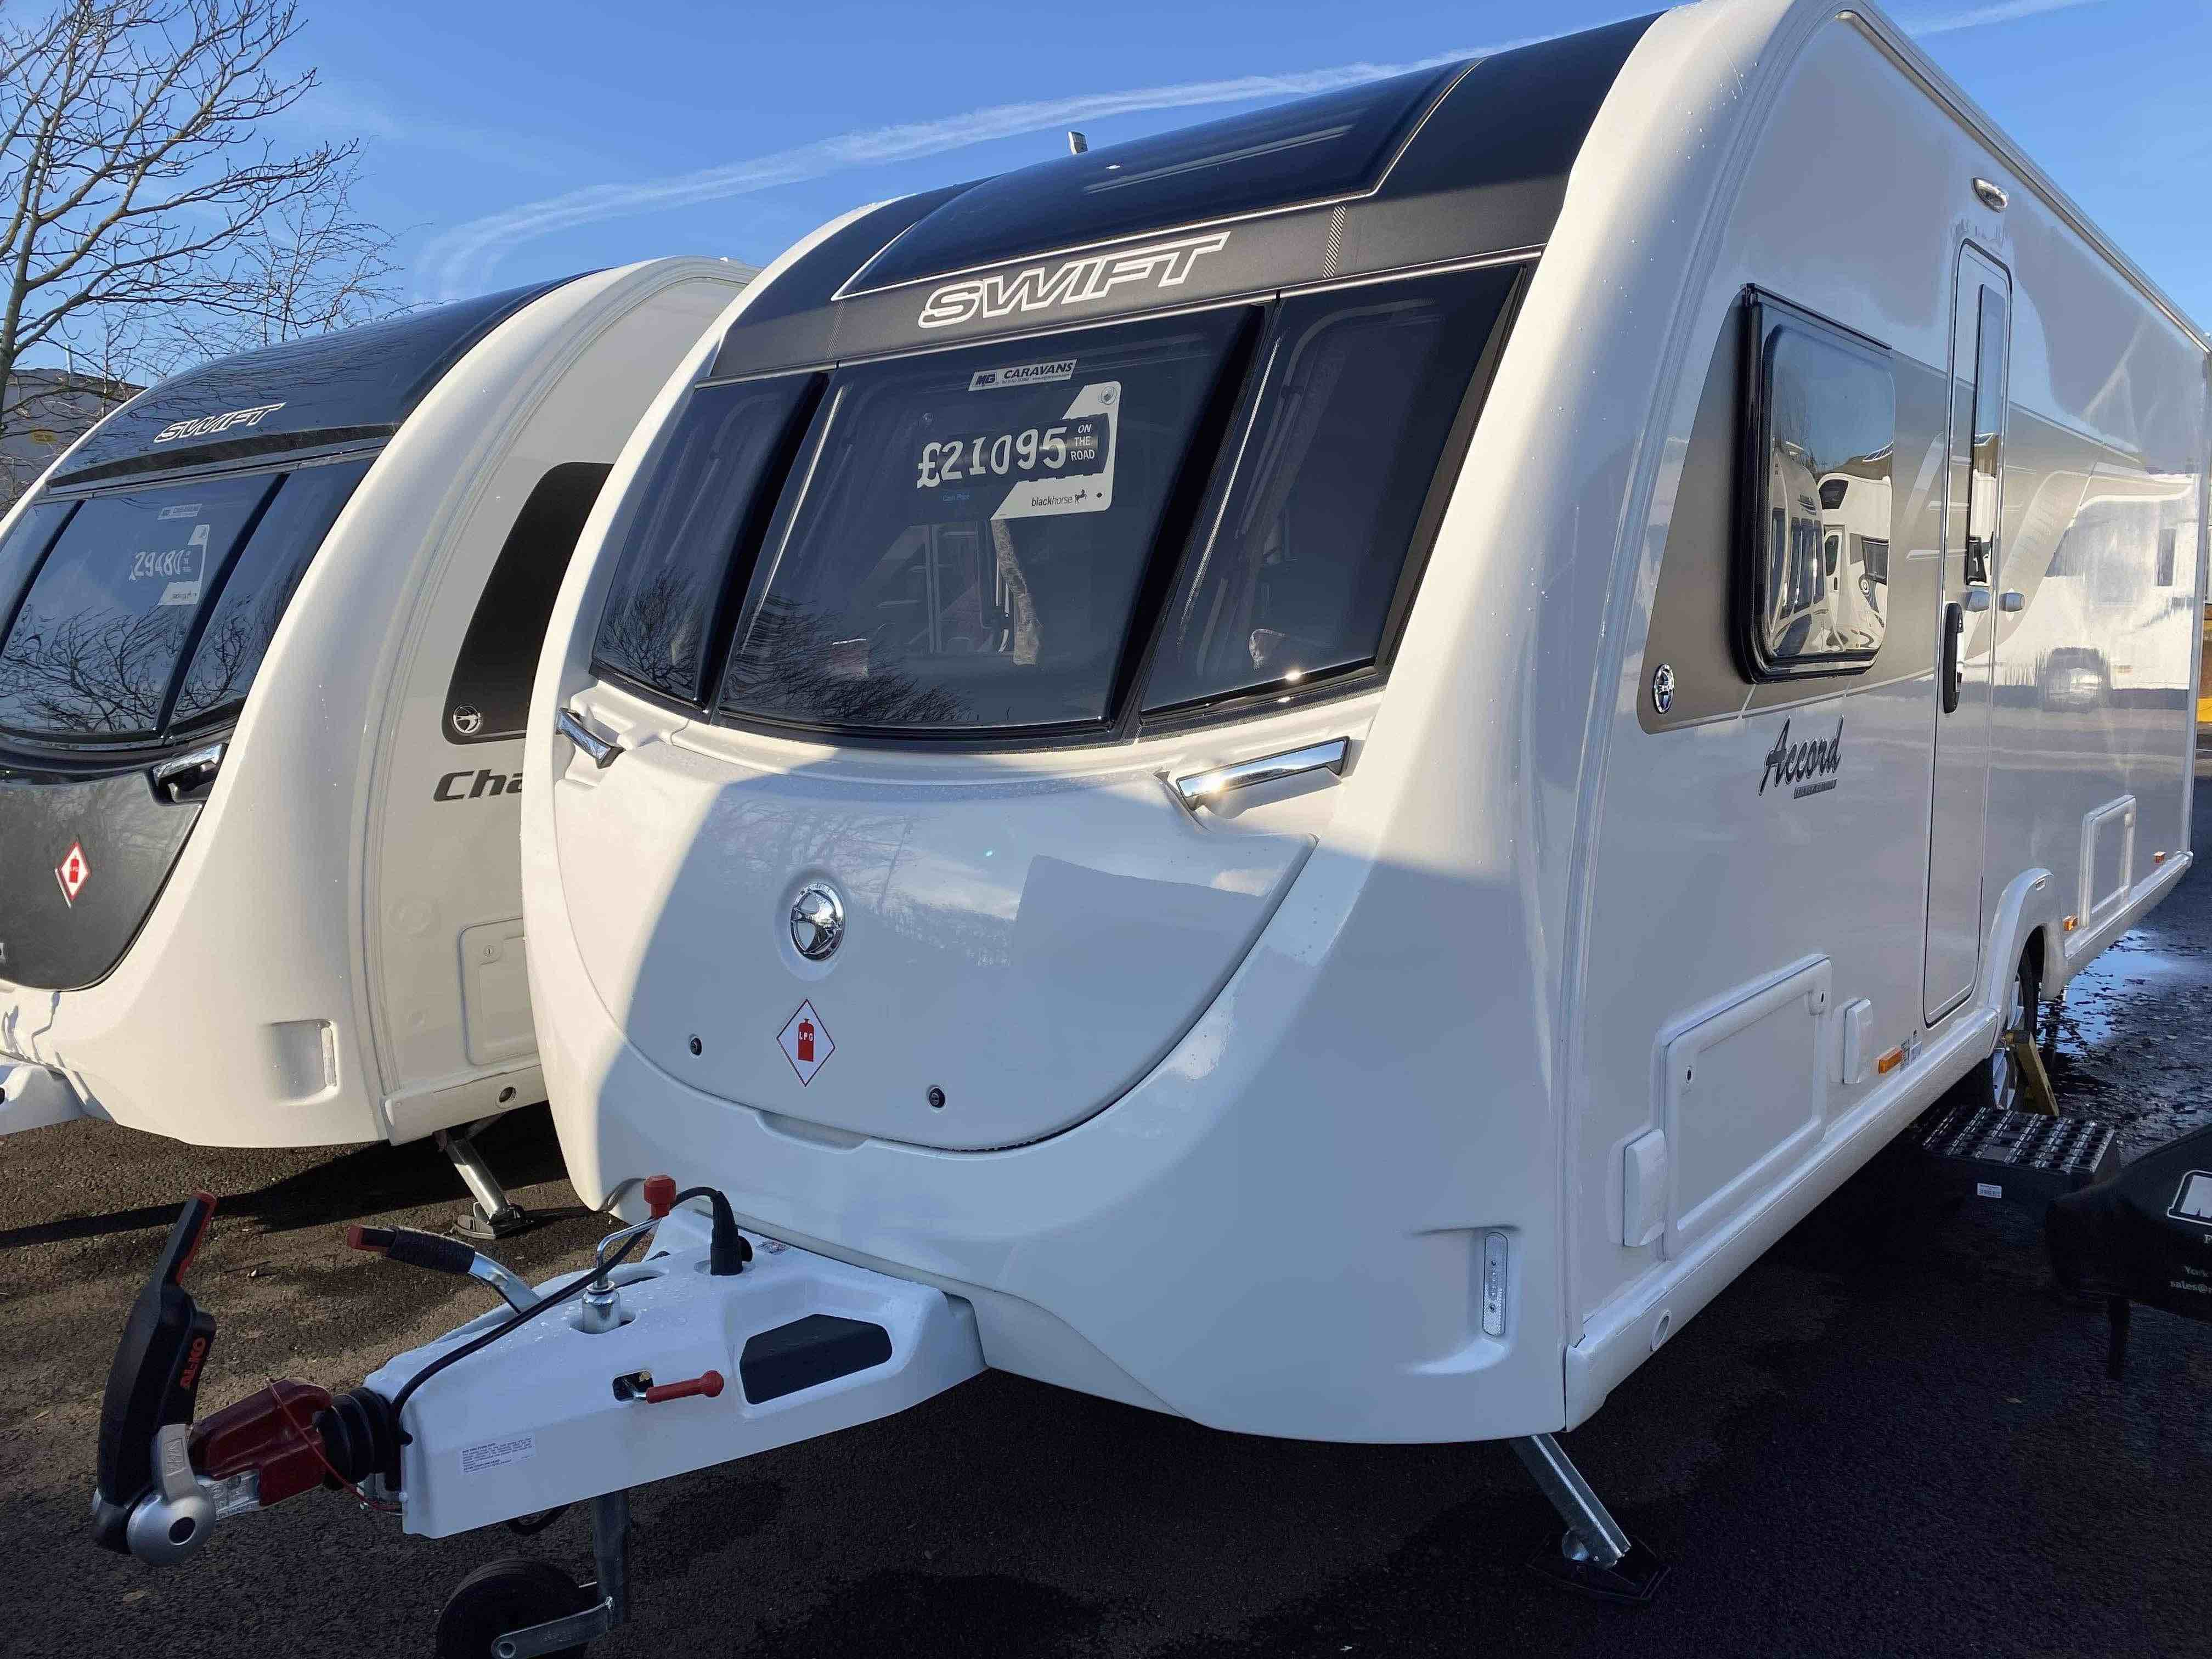 2021 Swift Accord 580 – *Demonstrator In Stock!* Limited availability for Easter!